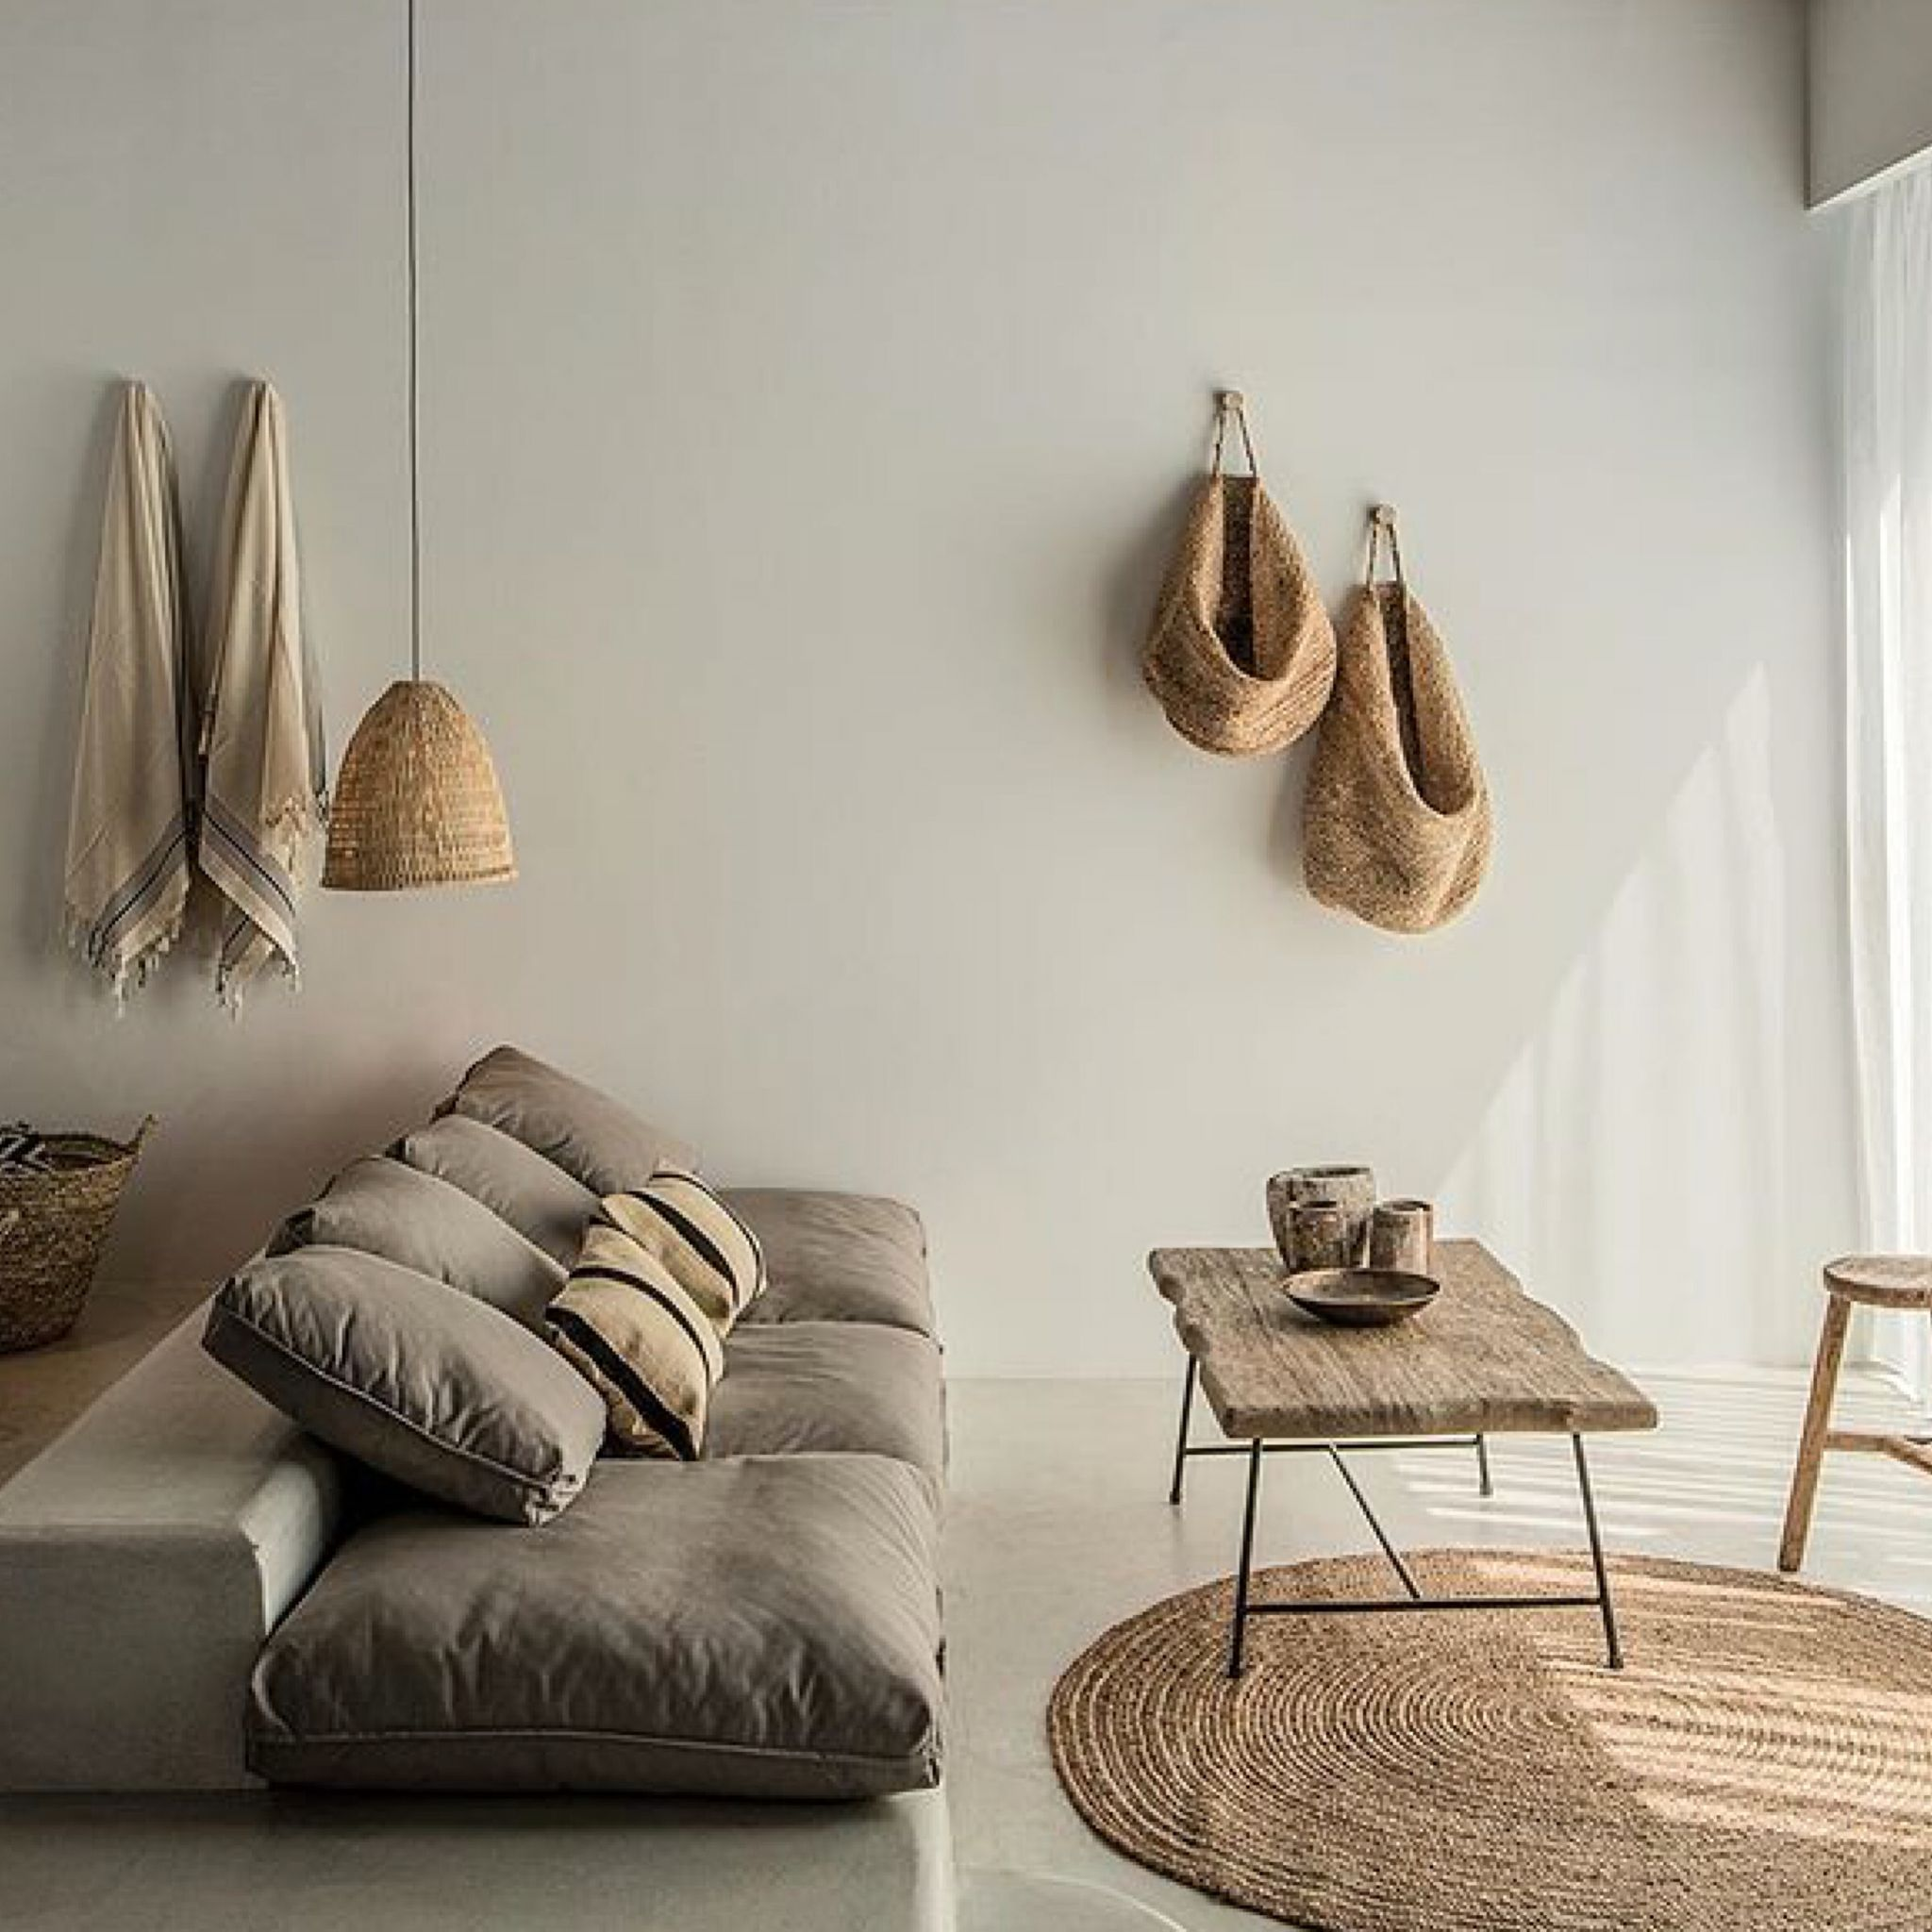 Minimal Linen Wood Organic Interior Decor And Design. Home Decoration  Inspiration. Minimalist Living.